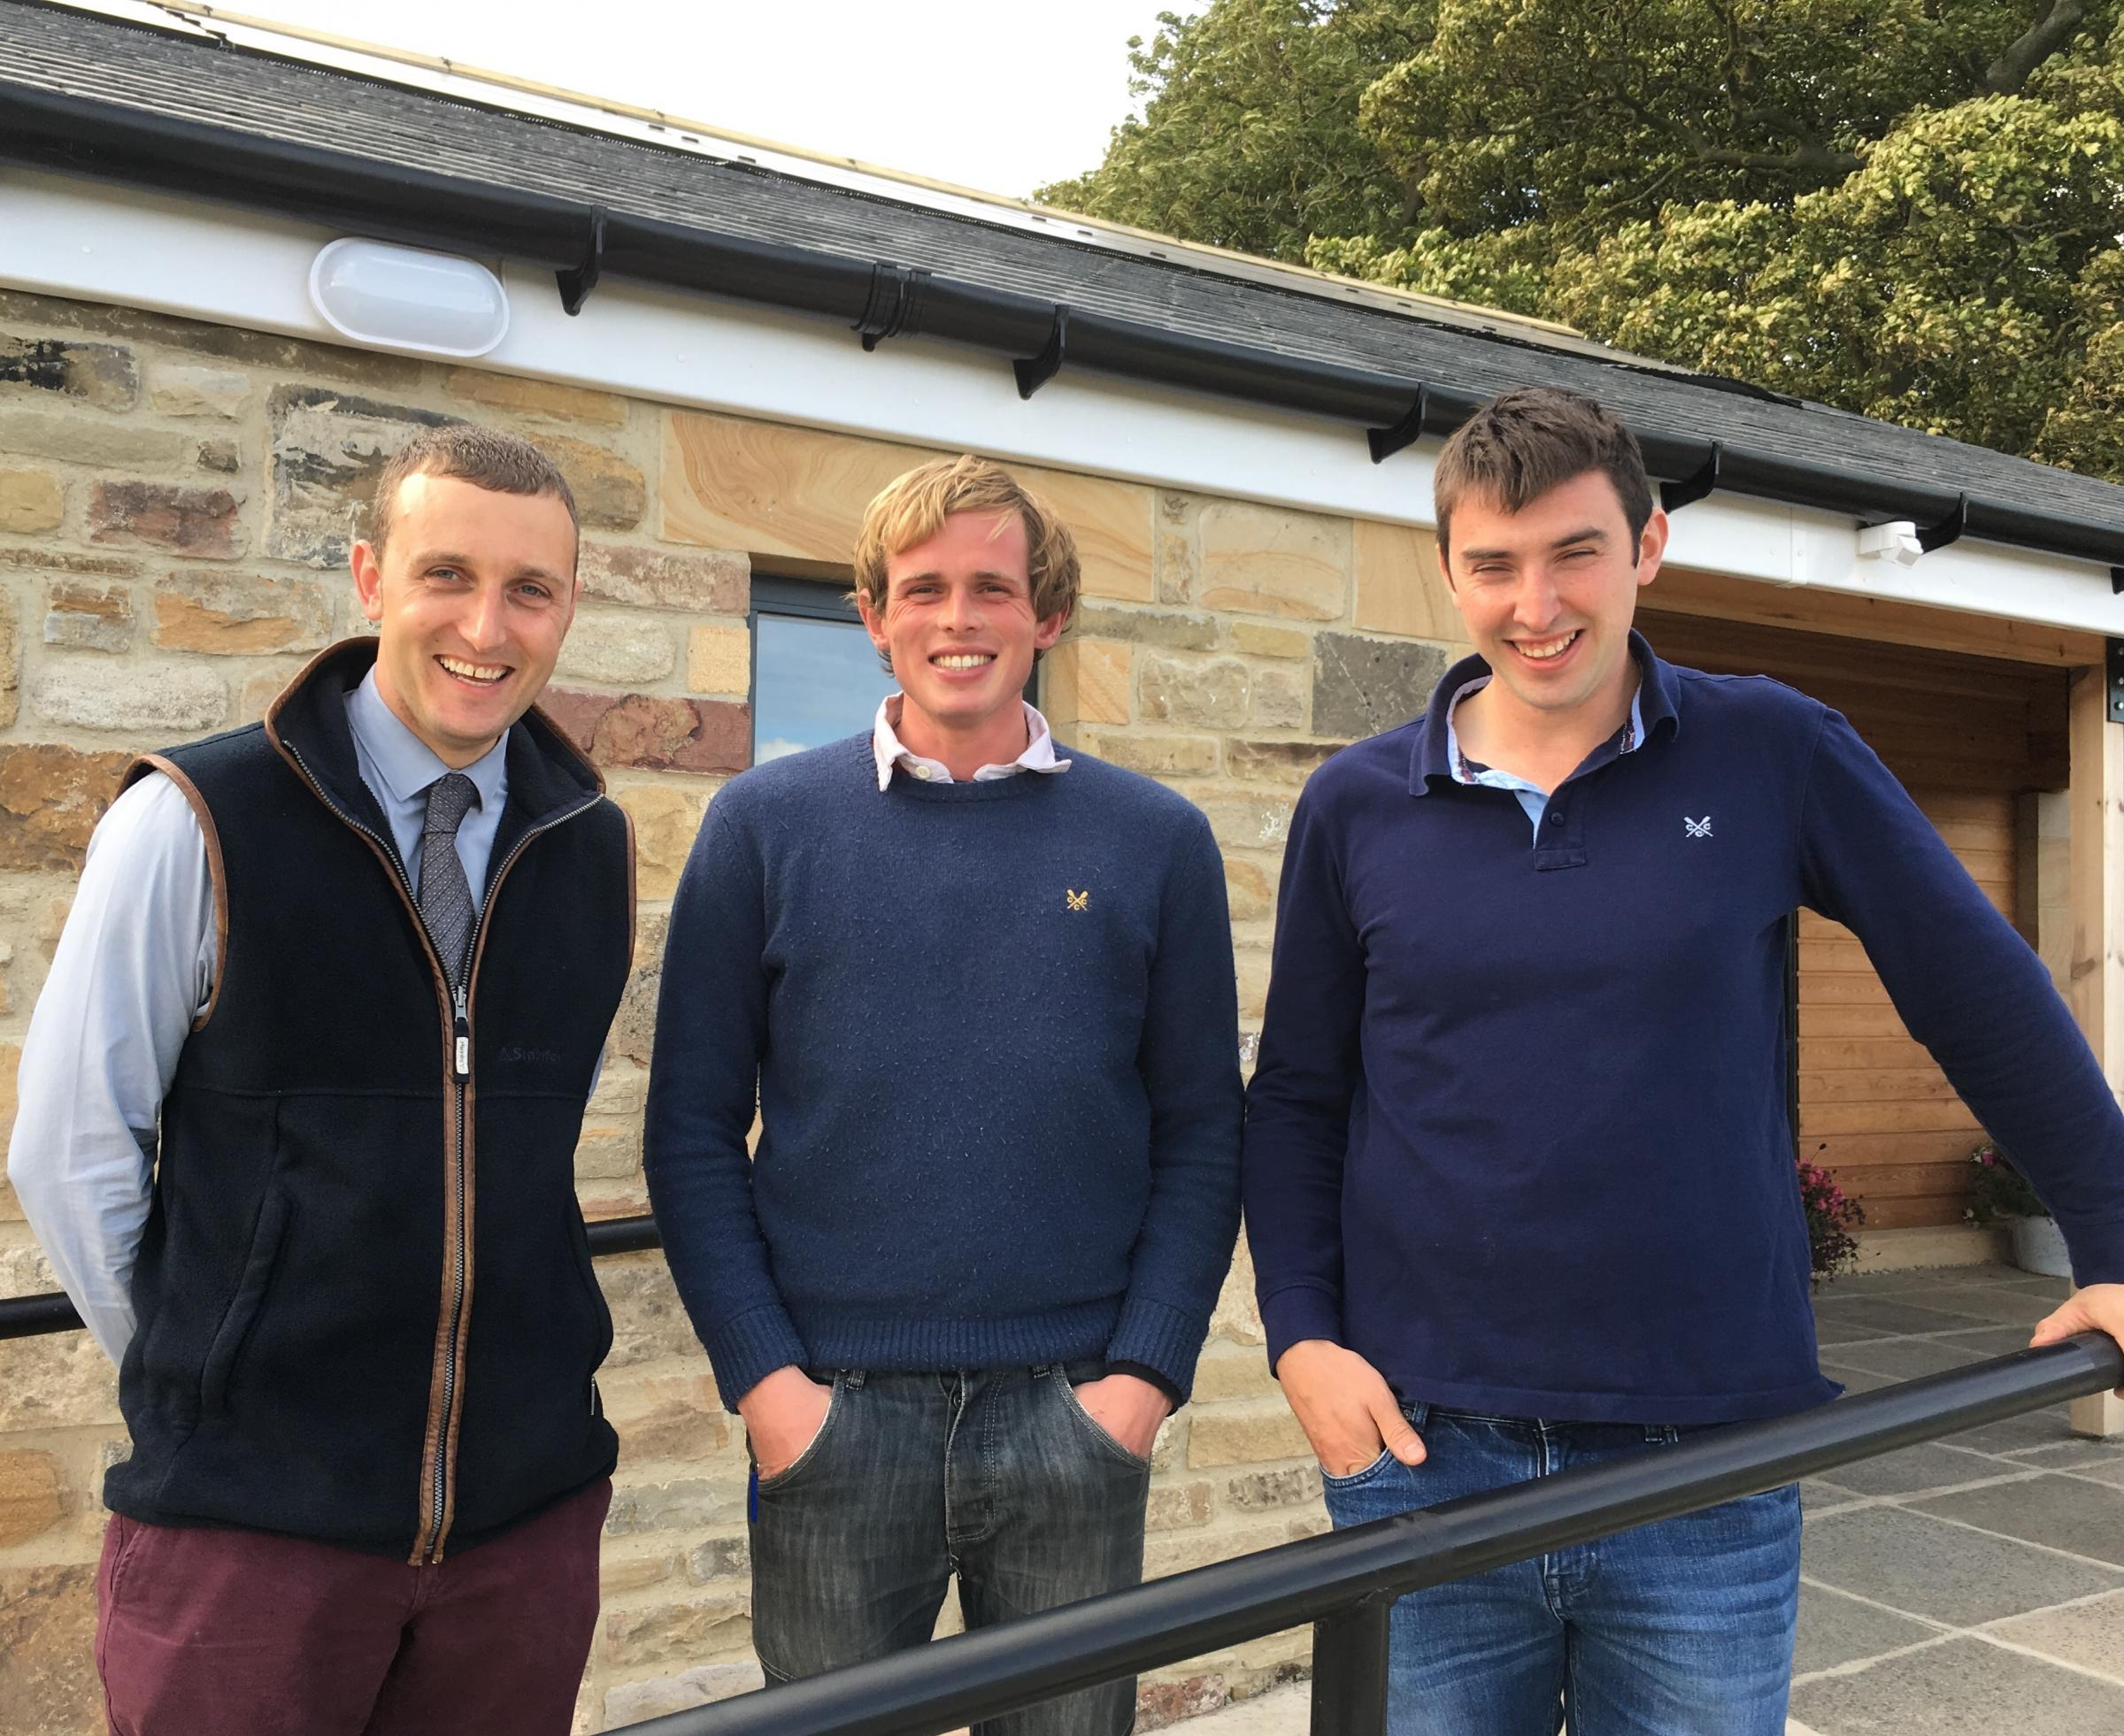 From left, Adam Barrass, Richard Darlington and Michael Moralee celebrate the opening of the new building for Butsfield YFC